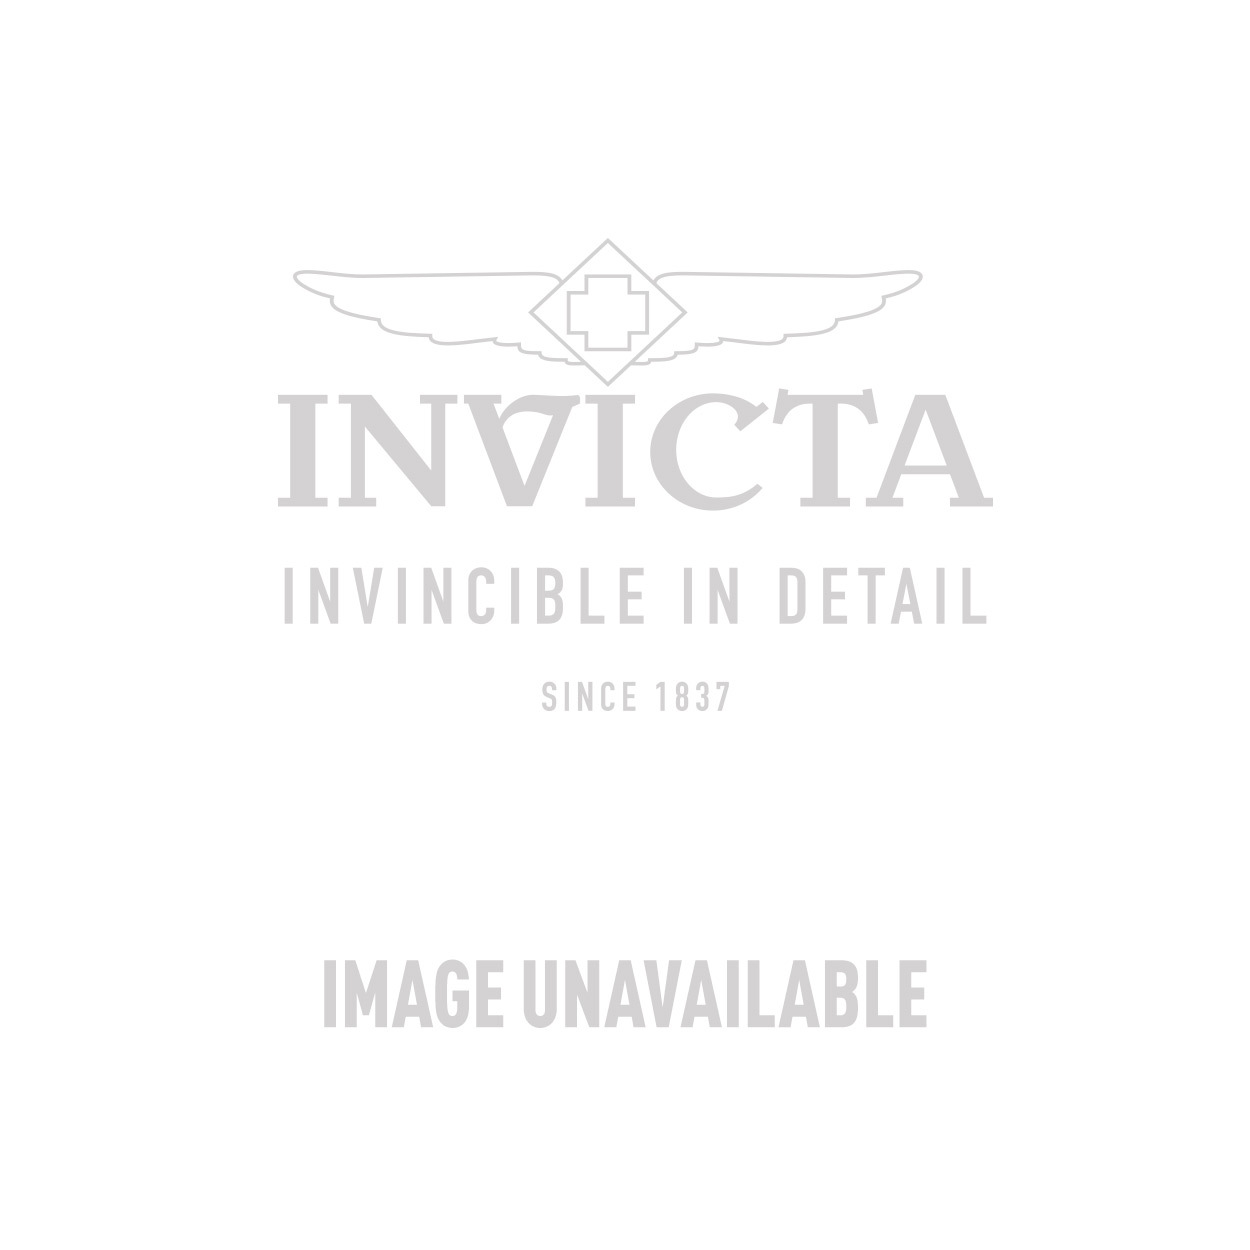 Invicta Wildflower Swiss Movement Quartz Watch - Stainless Steel case Stainless Steel band - Model 0610